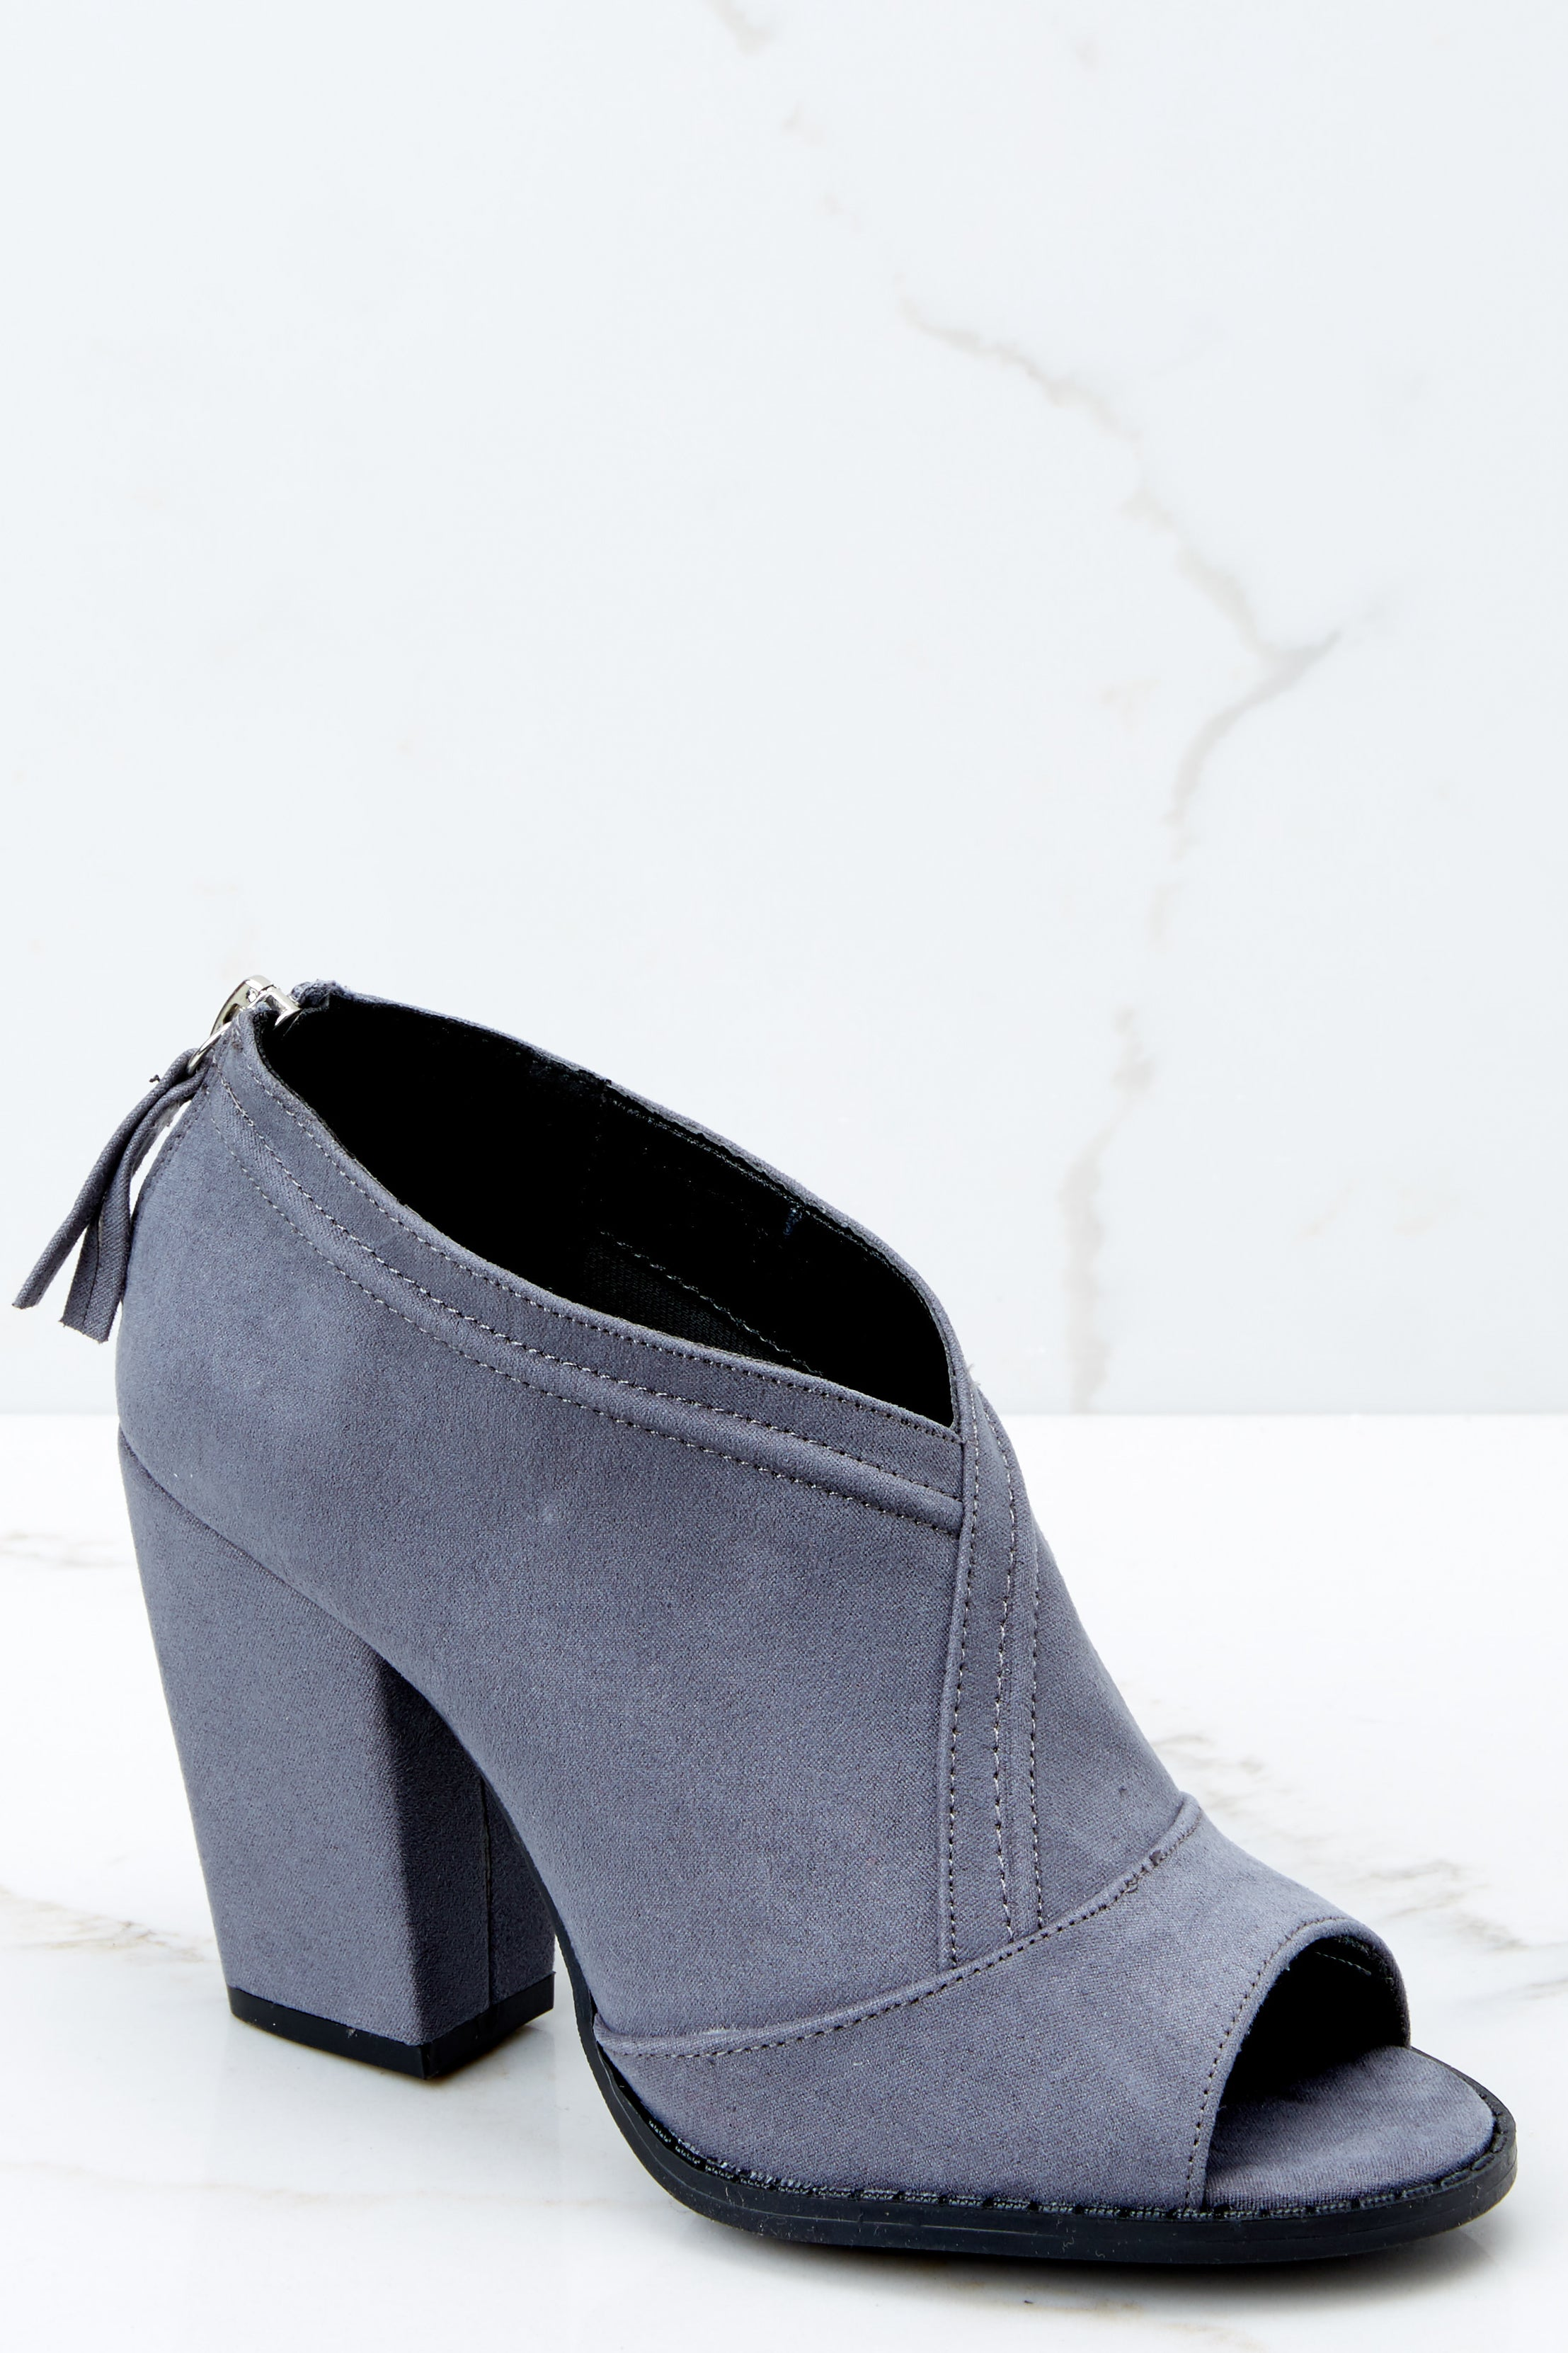 Sexy Grey Peep Toe Booties - Faux Suede Heels - Ankle Boots -  36.00 ... 3ef06a66a9e5